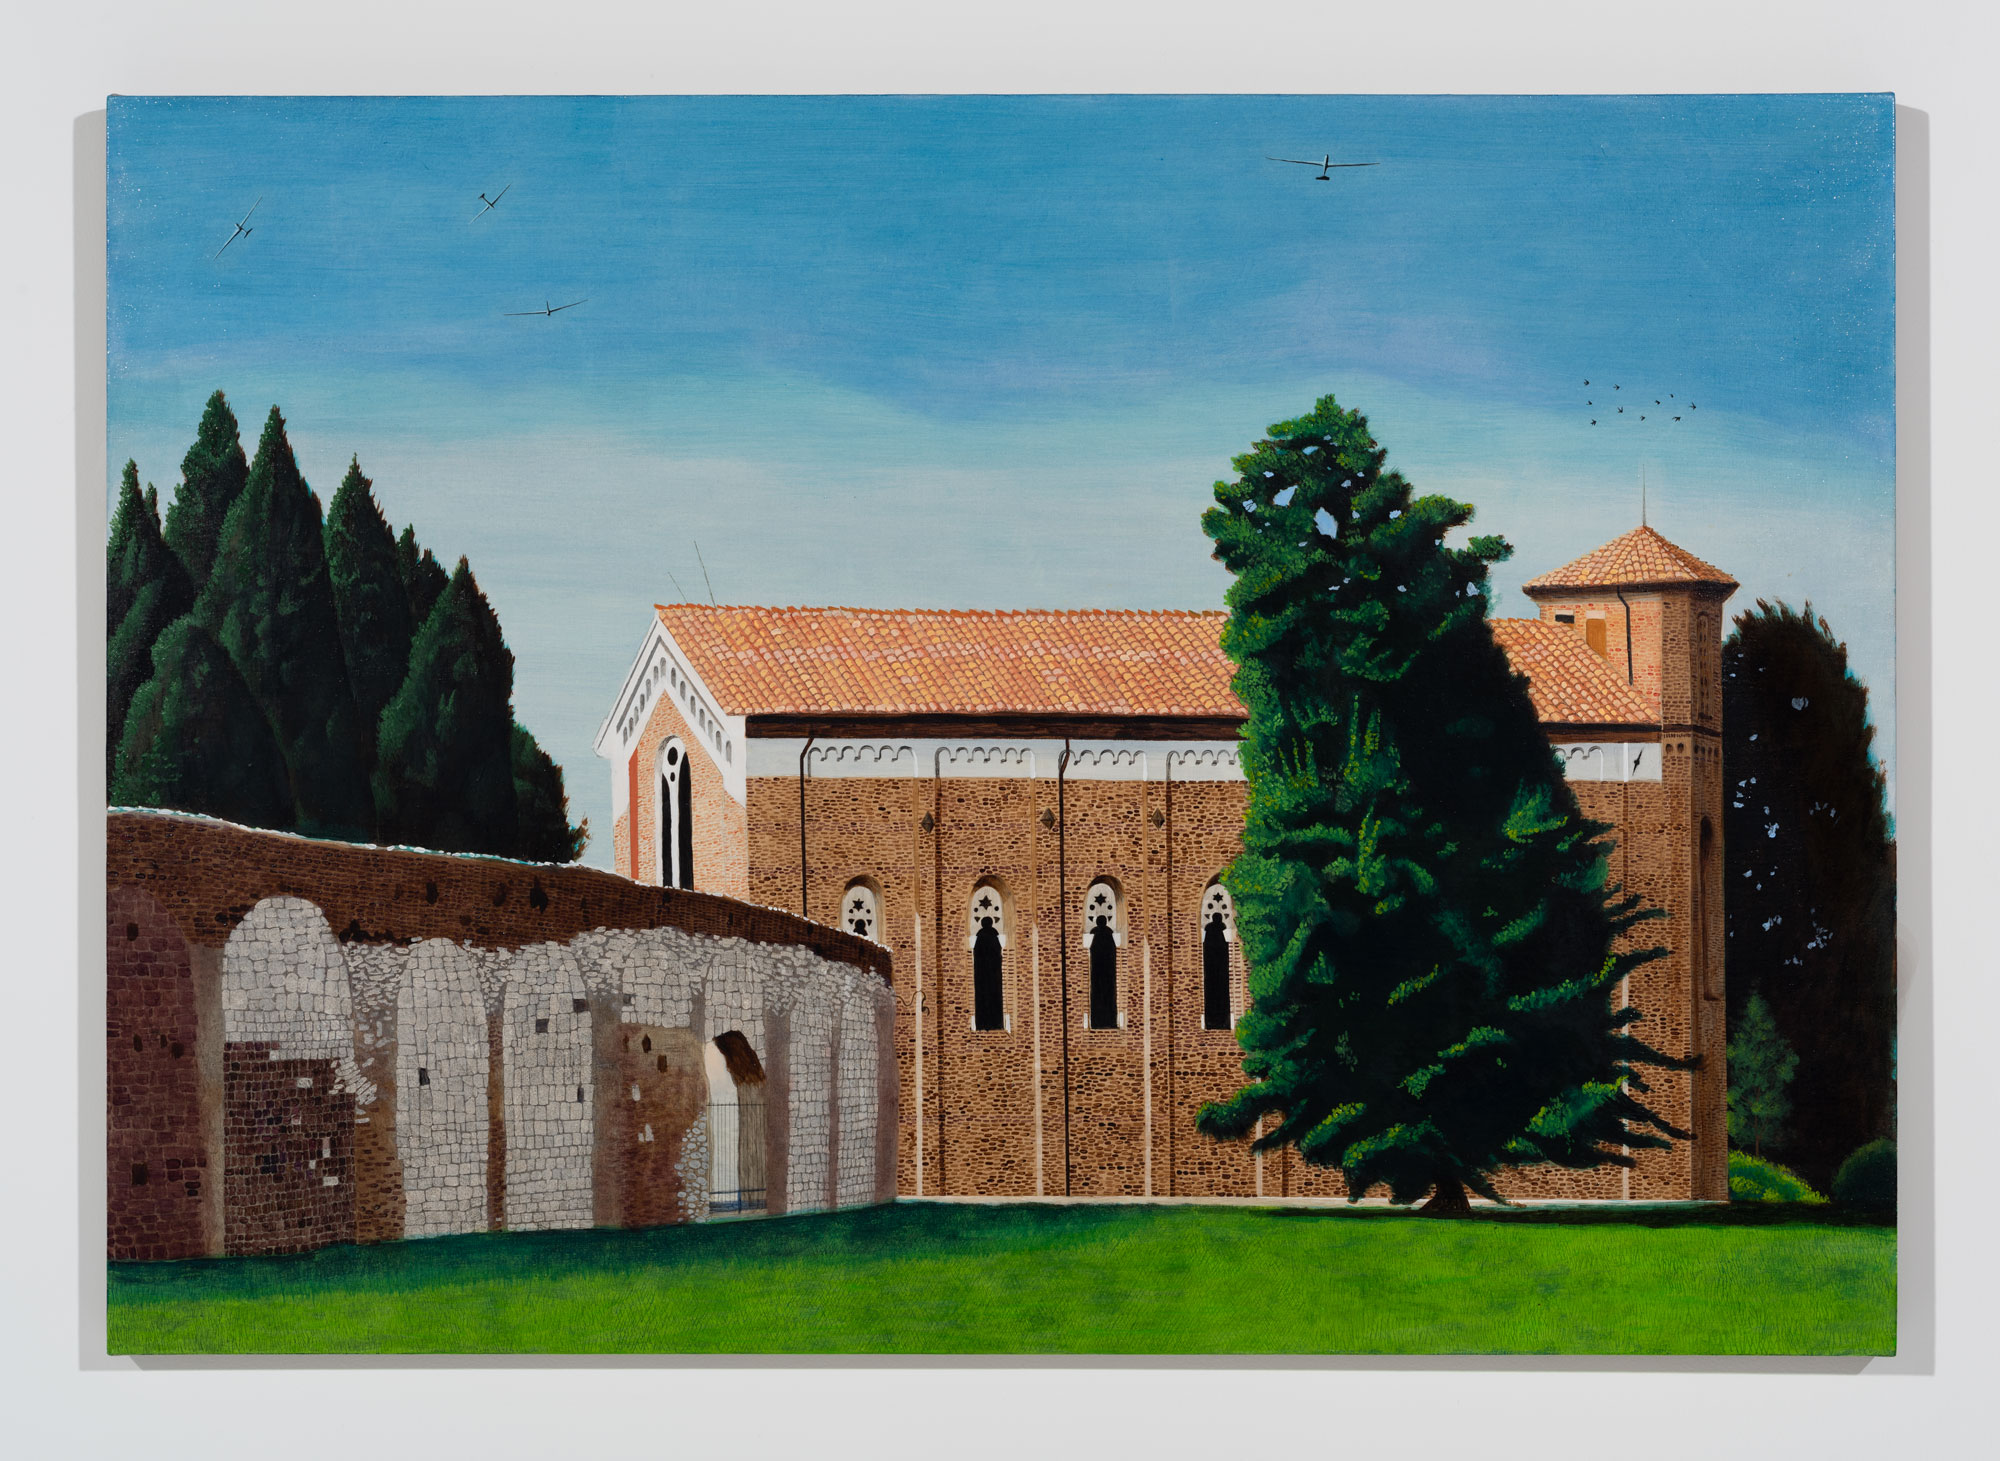 Scrovegni Chapel With Gliders Looking Due North, 2018